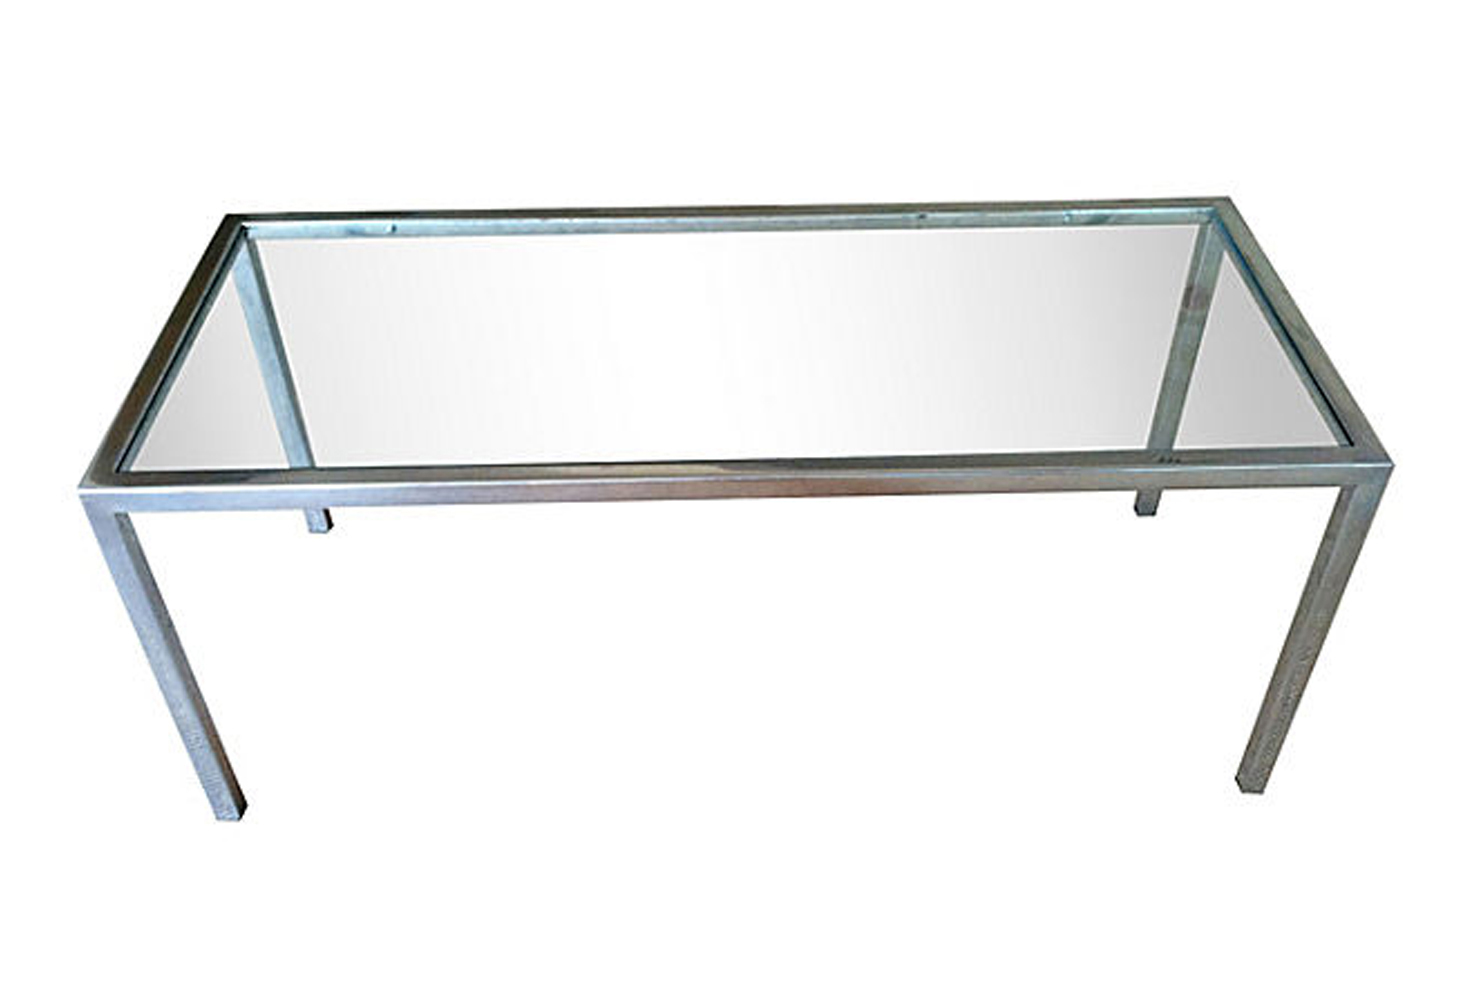 Modern-Chrome-Coffee-Table-Interesting-glass-coffee-table-can-be-of-unusual-style-Unique-and-Functional-Shower-Bench-Designs (Image 6 of 10)